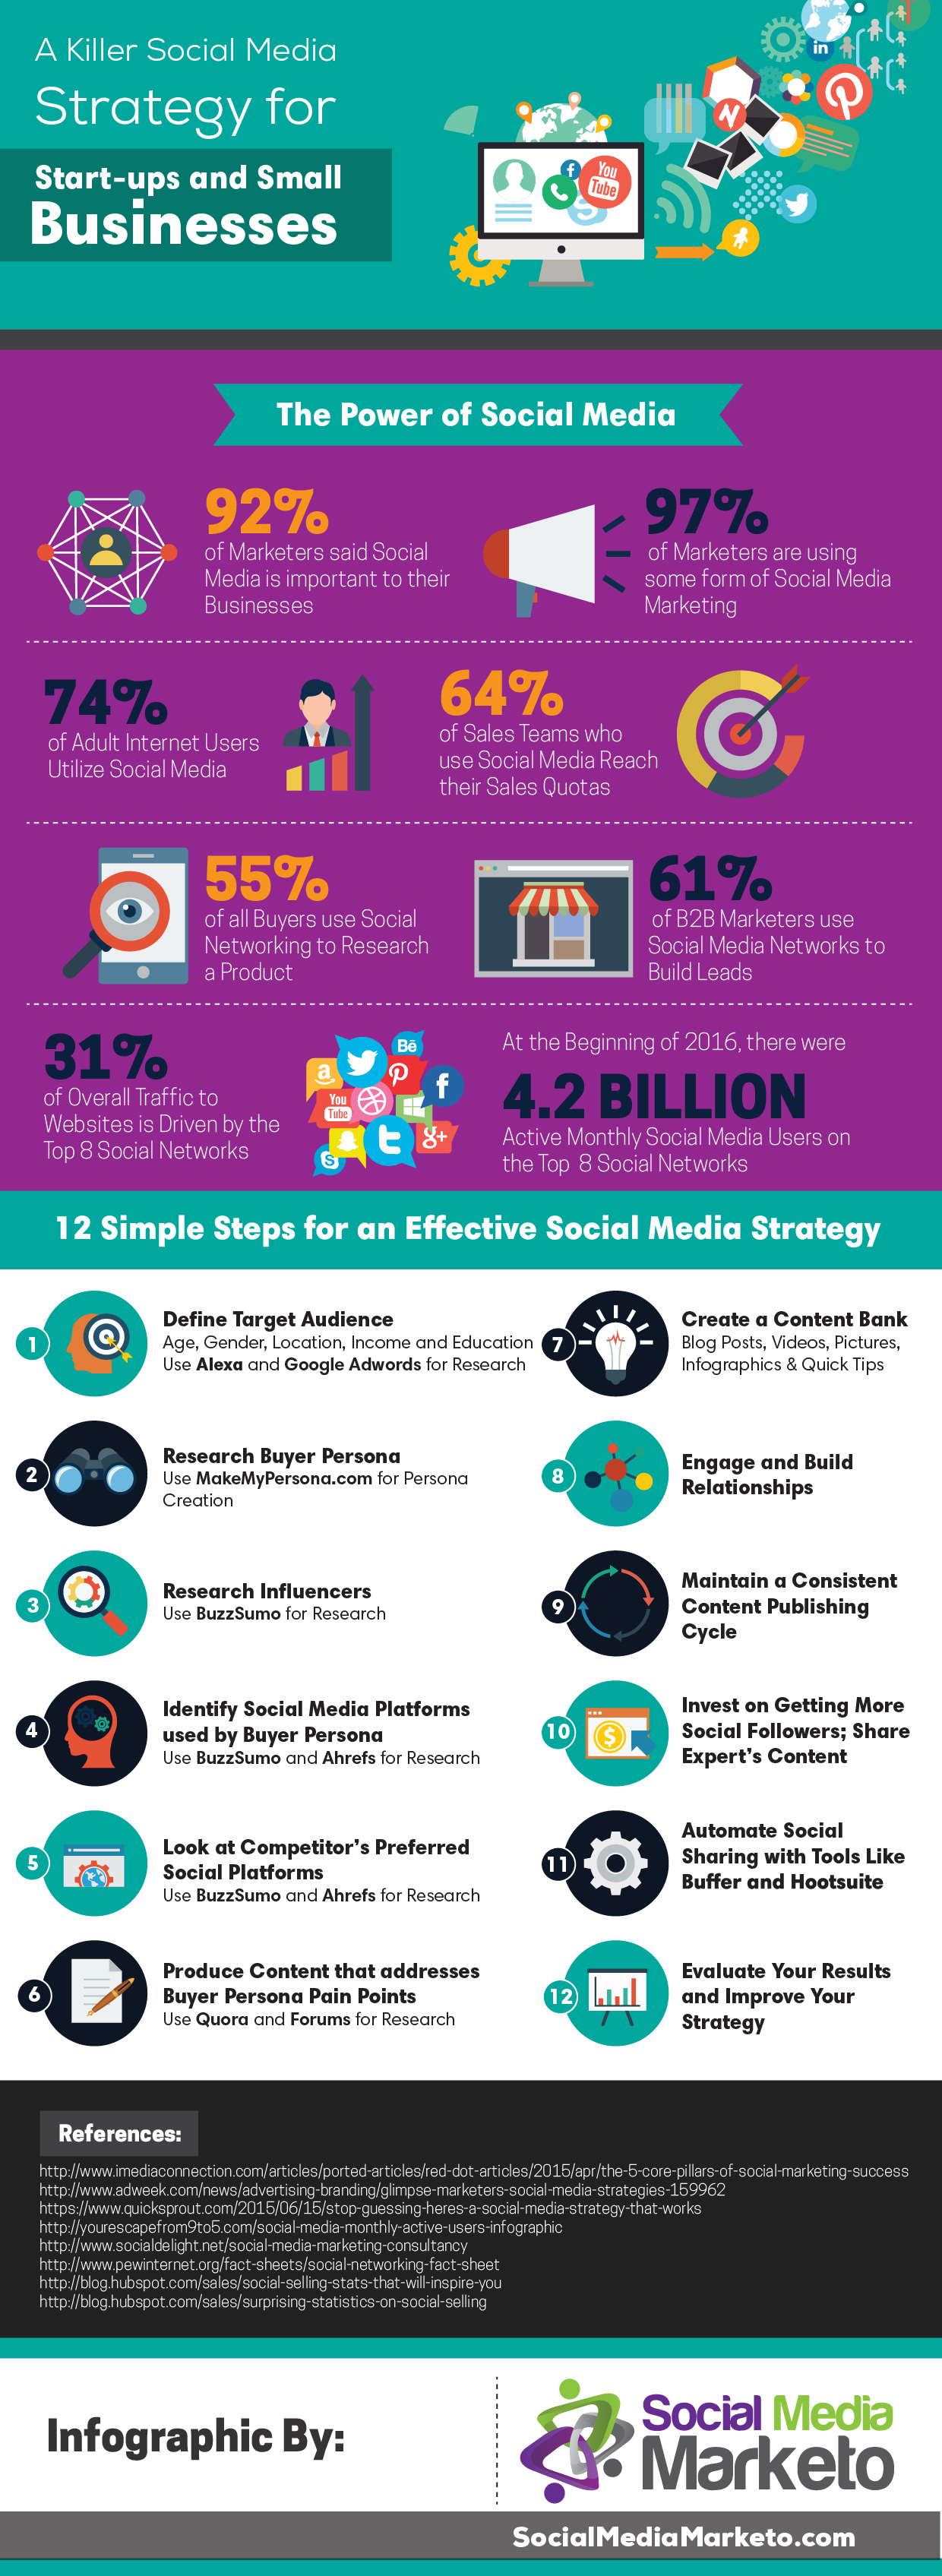 a-killer-social-media-marketing-strategy-for-startups-and-small-businesses-infographic